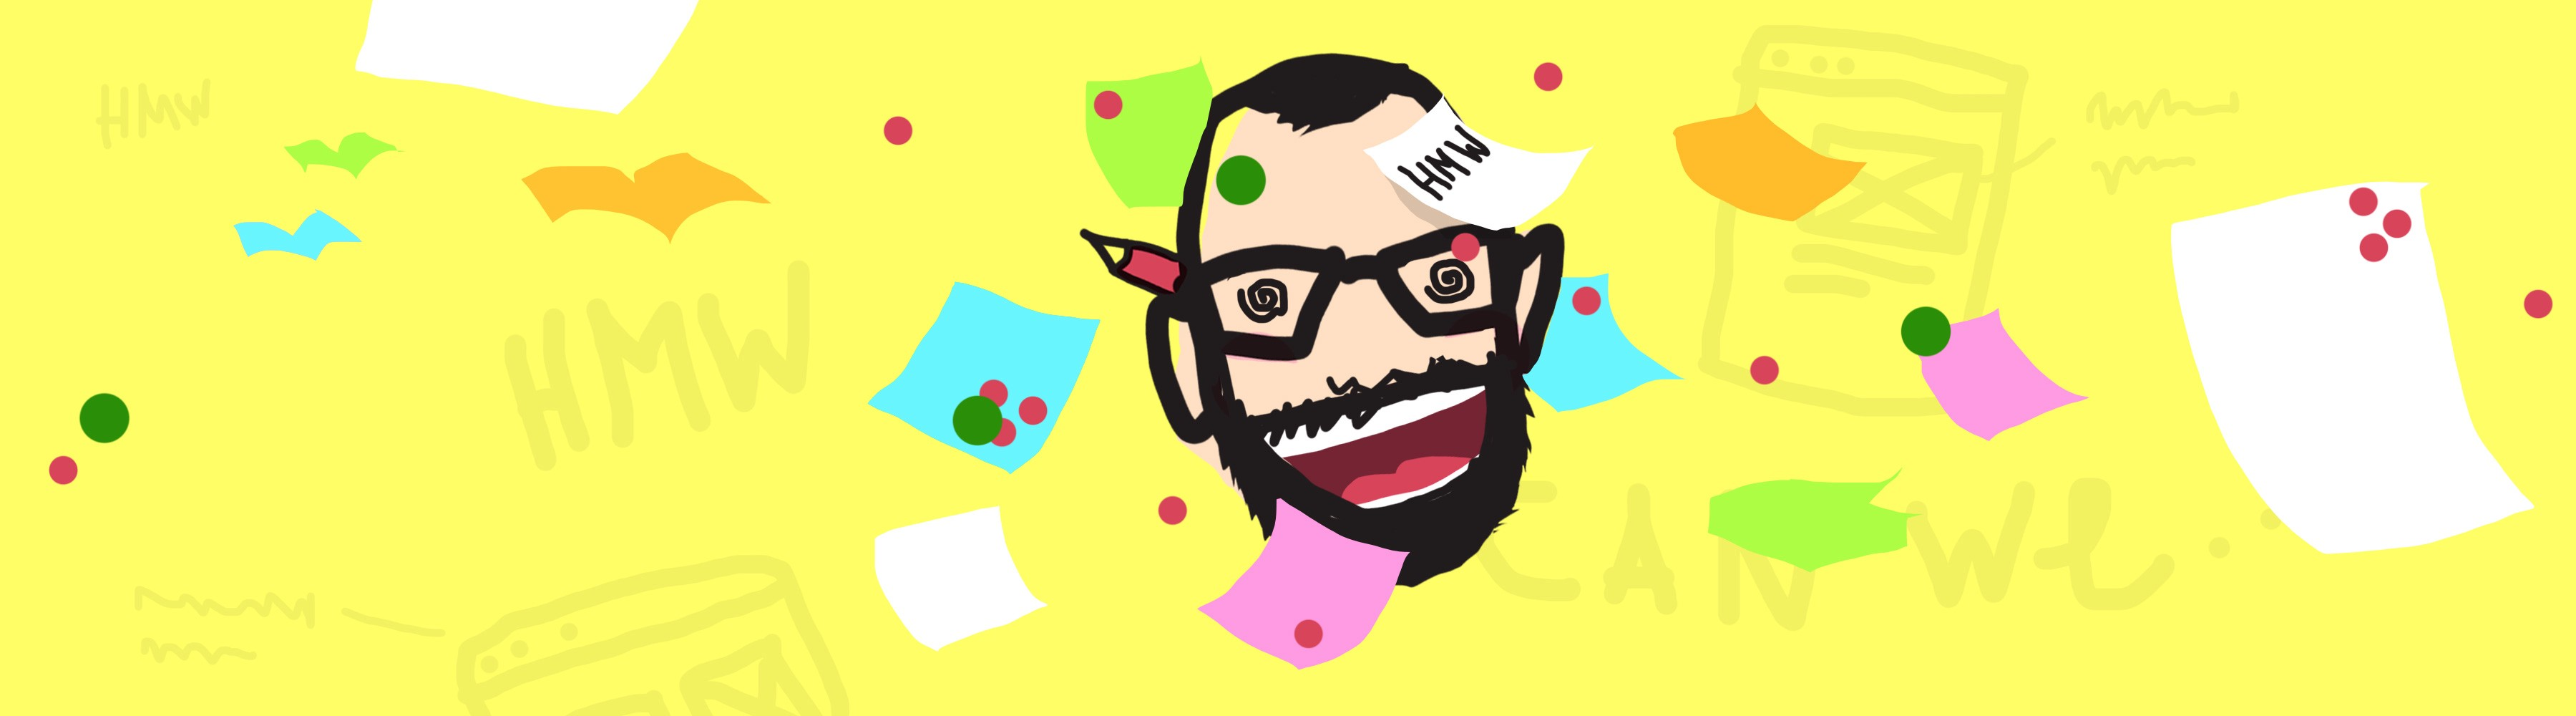 Badly drawn illustration of a super hyped floating head with sticky notes flying around